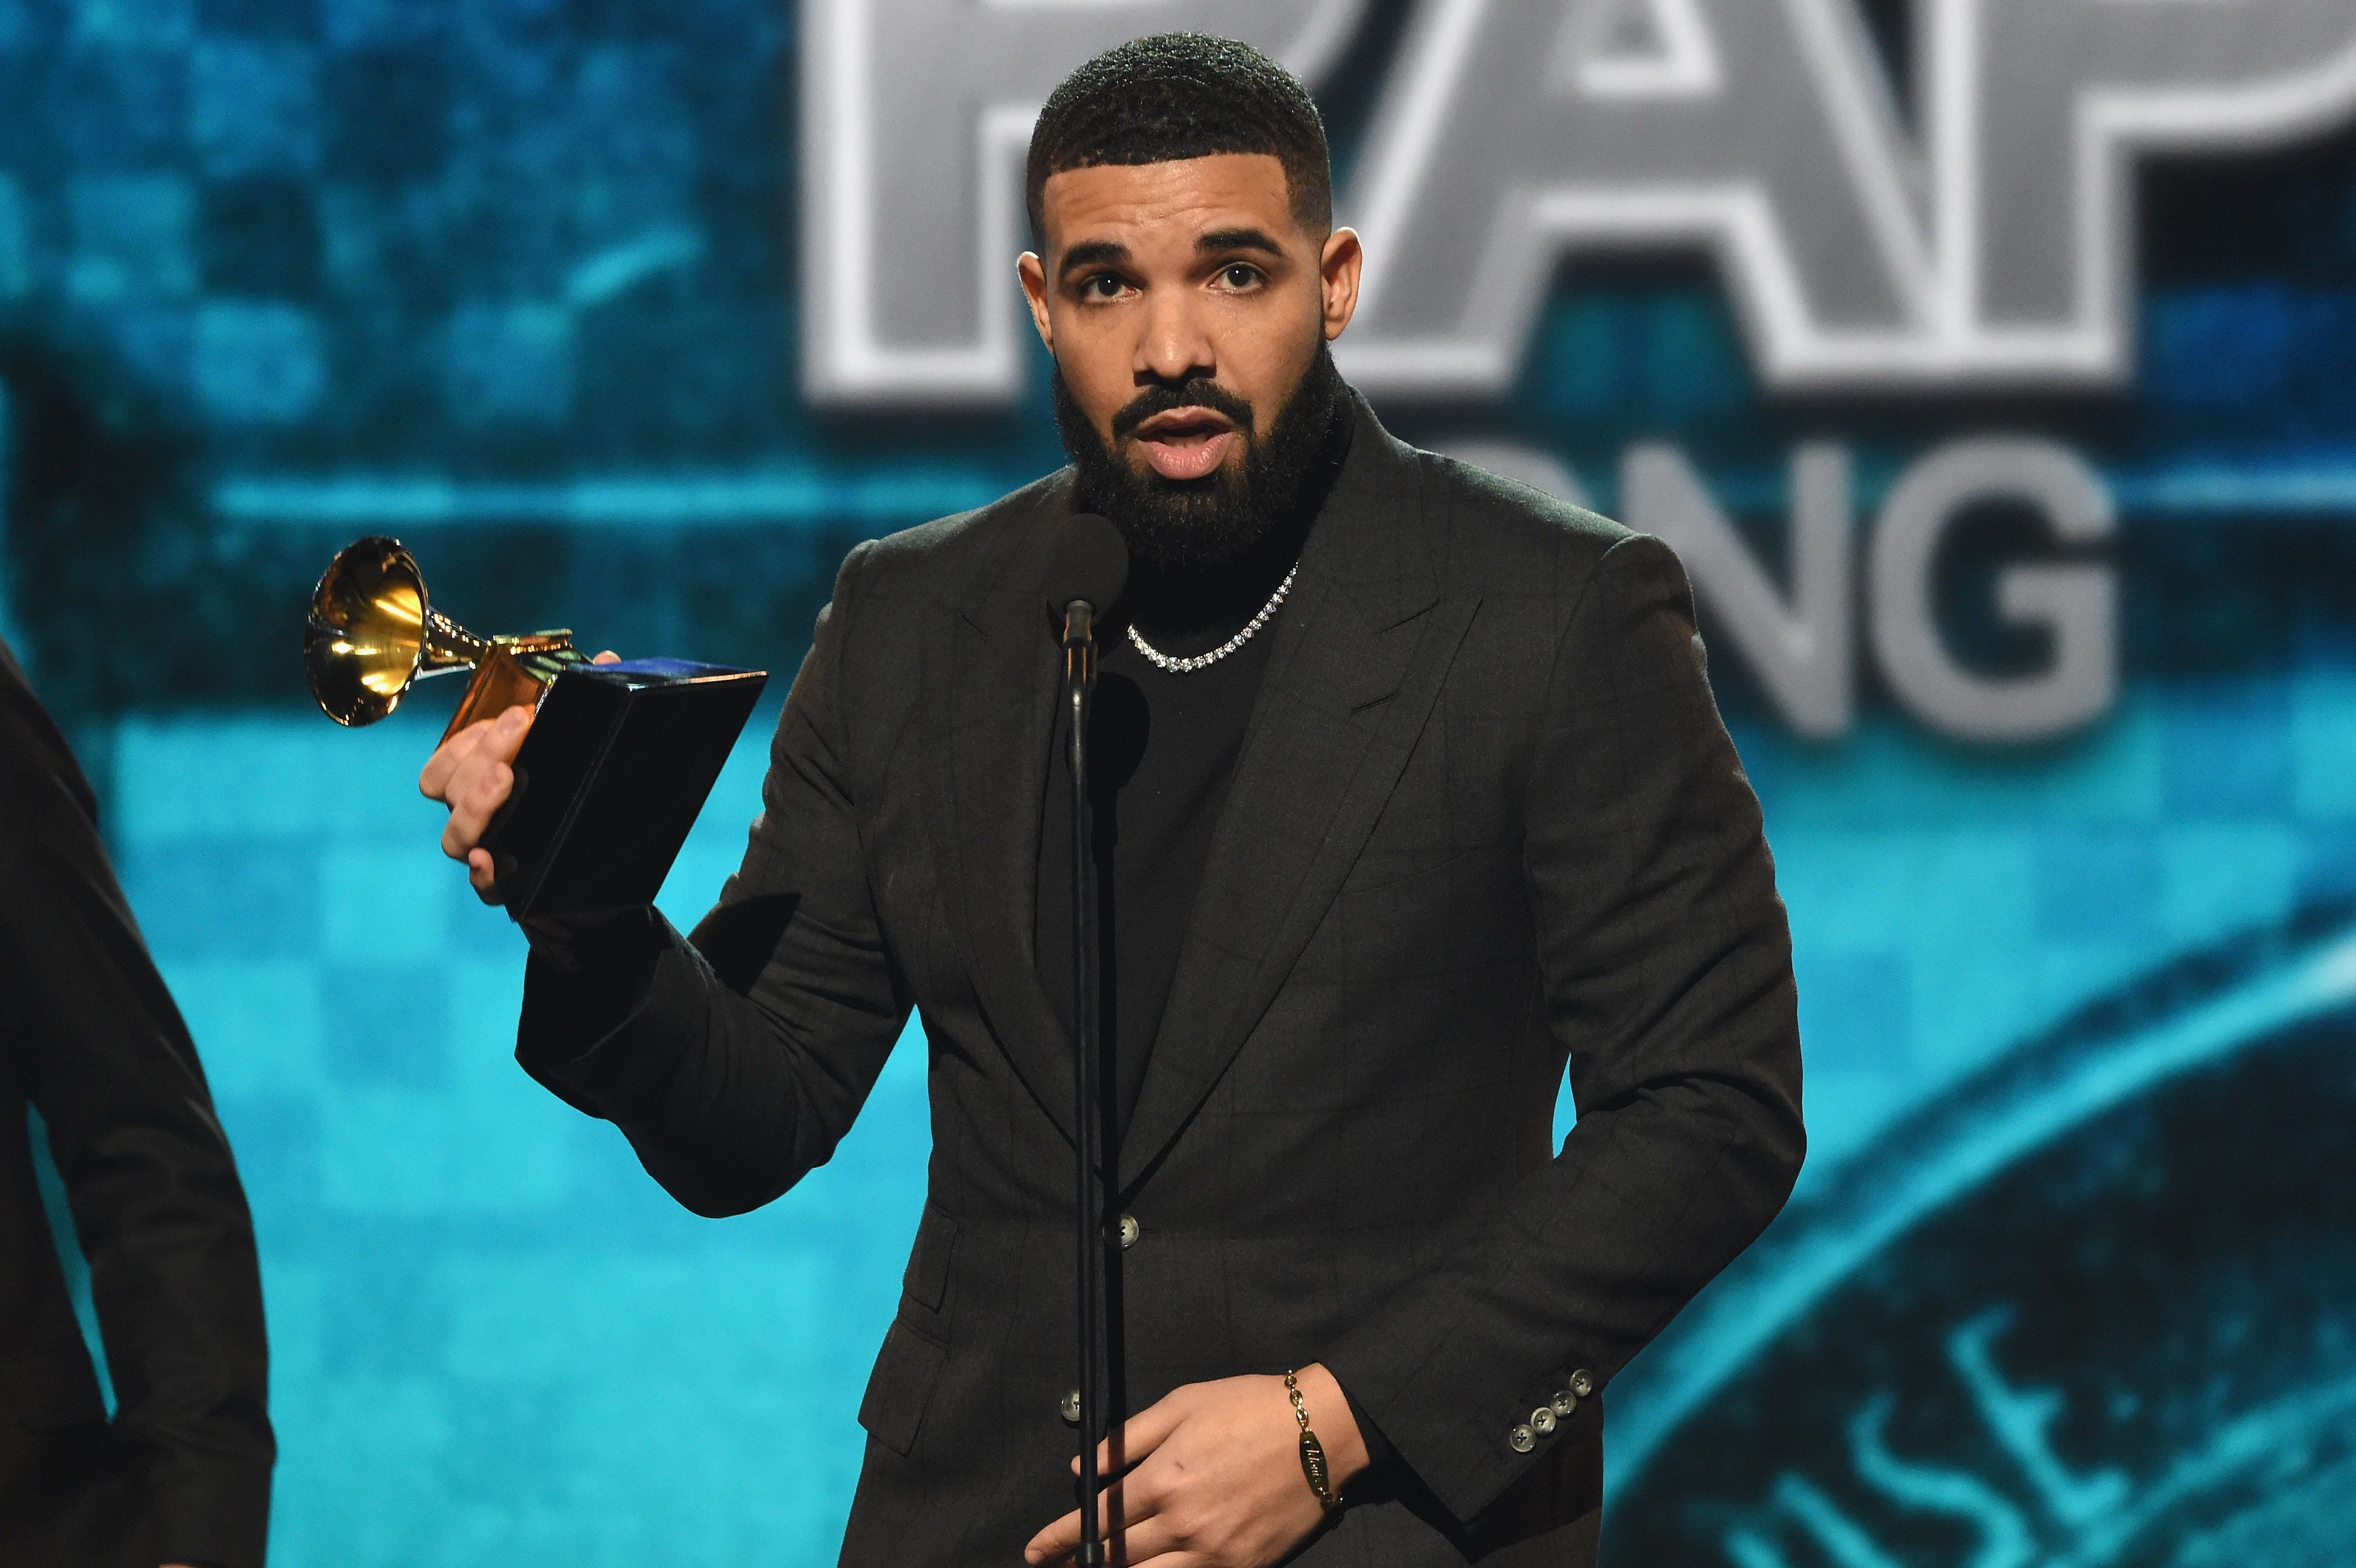 Drake Makes A Surprise Appearance At The Grammys Only To Get Cut Off